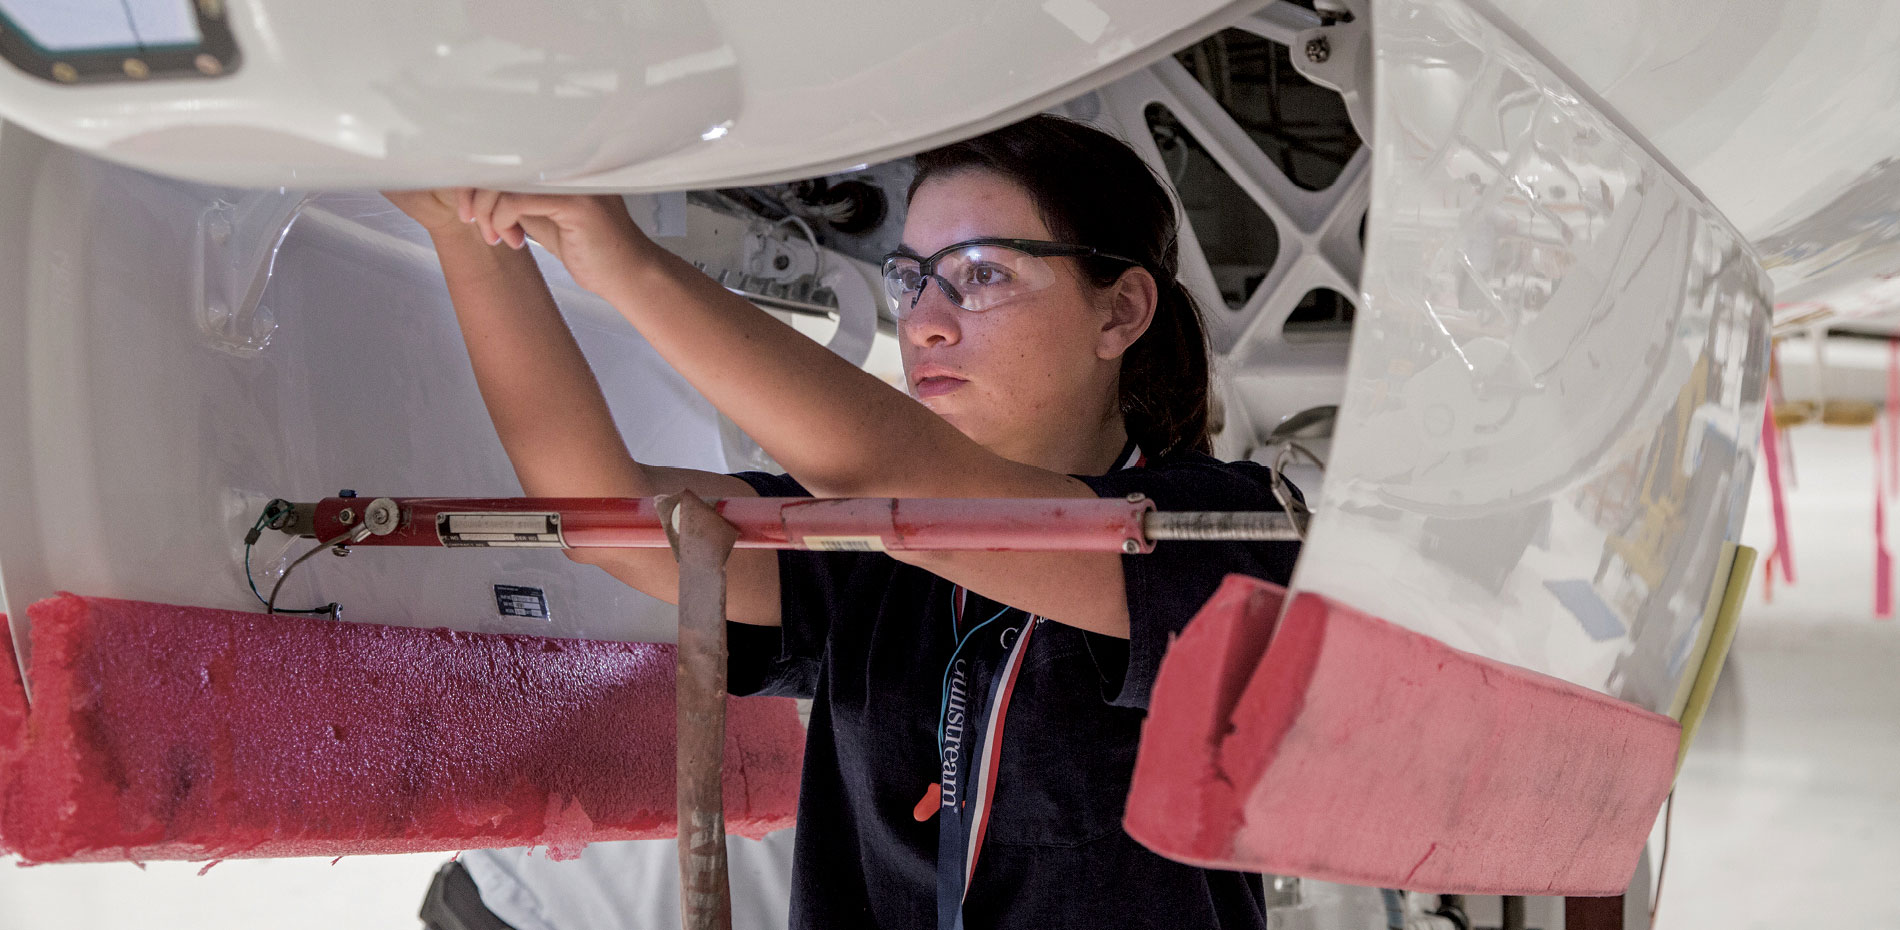 Spc. Victoria Frizalone adjusts the latches of the nosecone of a G450 at the Service Center of Gulfstream Aerospace.